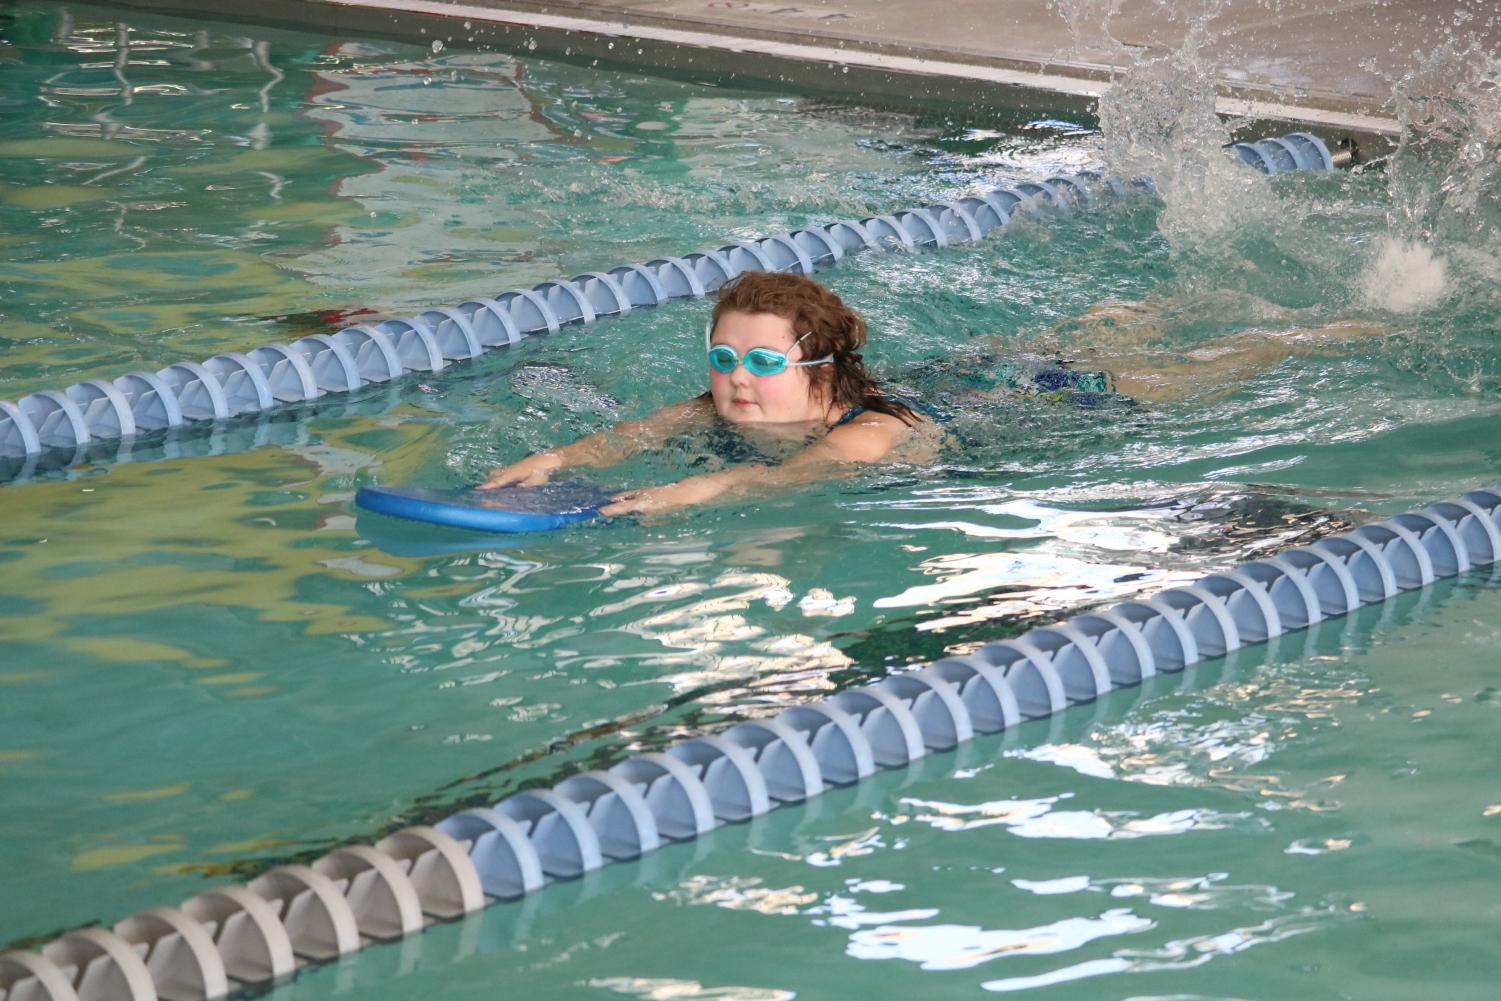 Swimming down the lane, junior Nathalie Ollerich competes in Unified Swimming. The students have been practicing in the evenings to prepare for competitions.